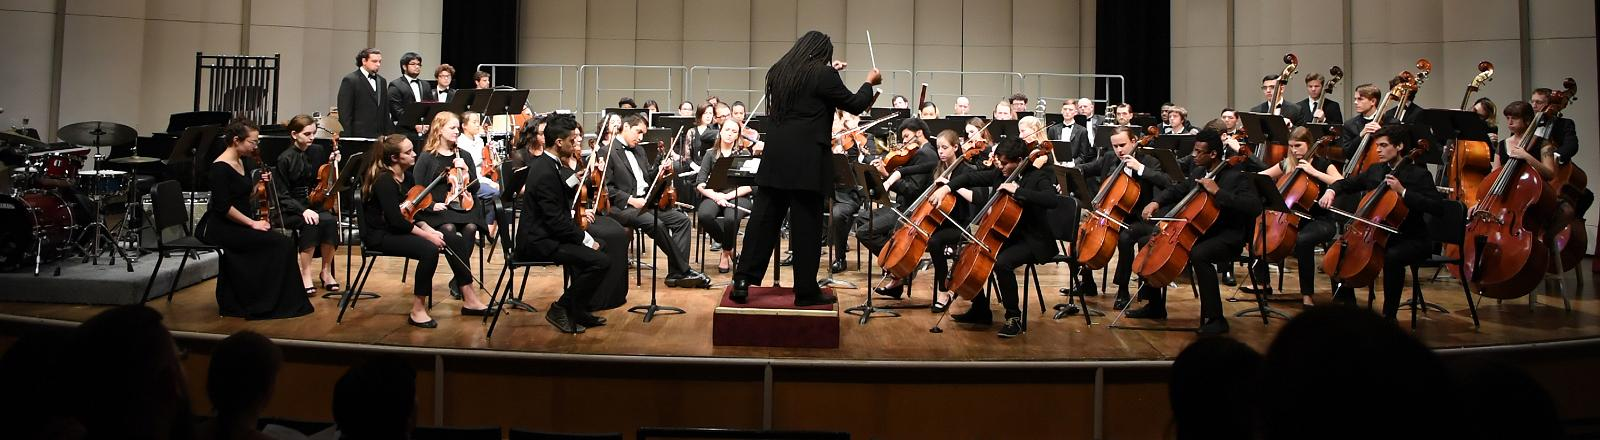 Dr. Montes directing the orchestra in concert